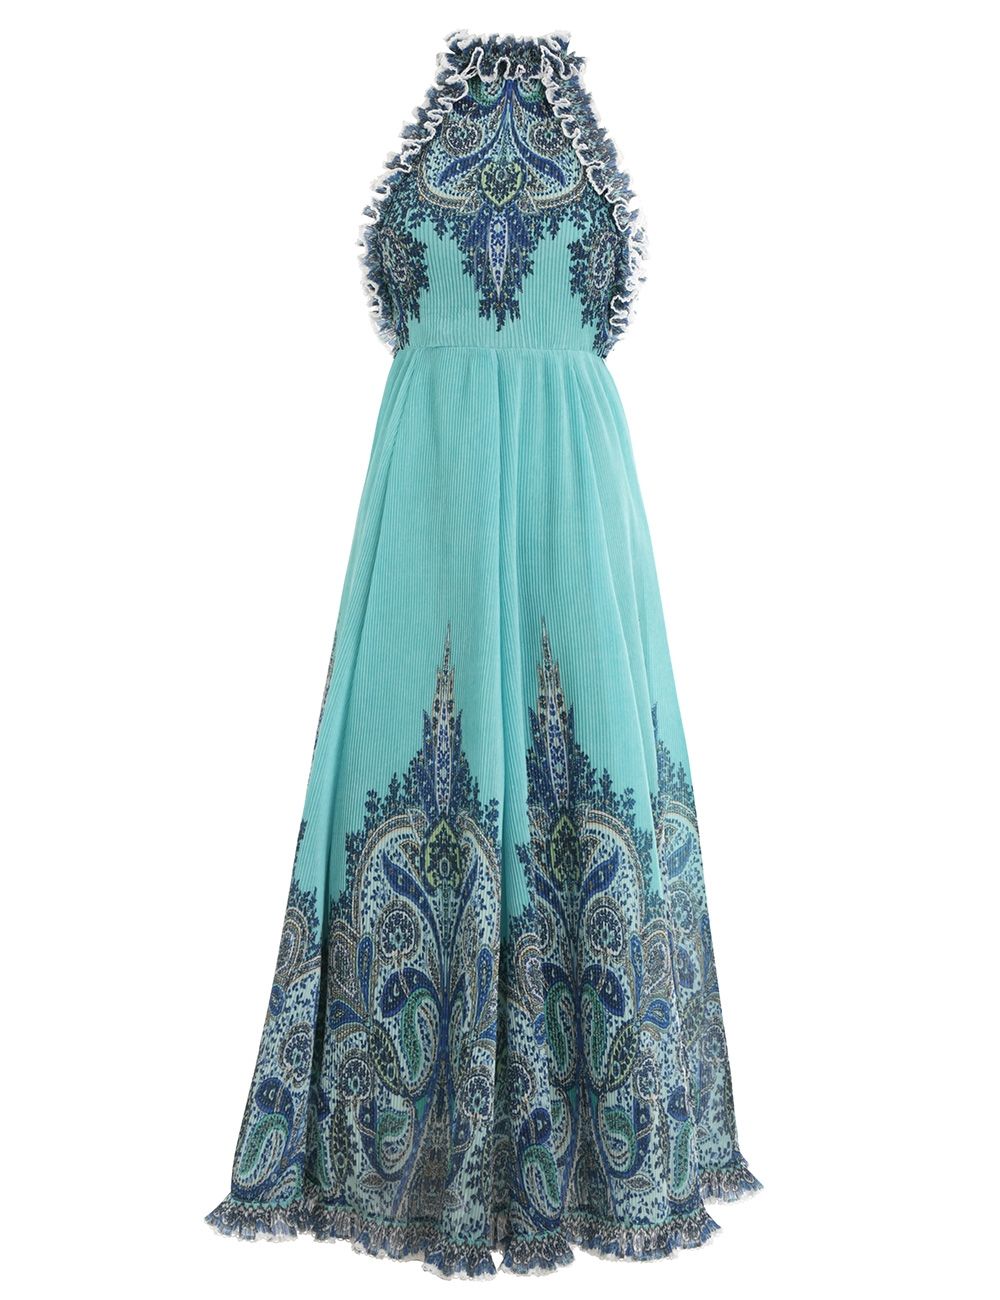 31f12f941acdc 1.5663dmon.aqpa.aqua_paisley-moncour-ruffle-neck-pinafore -flat.jpg?width=500&height=645&canvas=500:645&quality=100&bg-color=255,255,255&fit=bounds